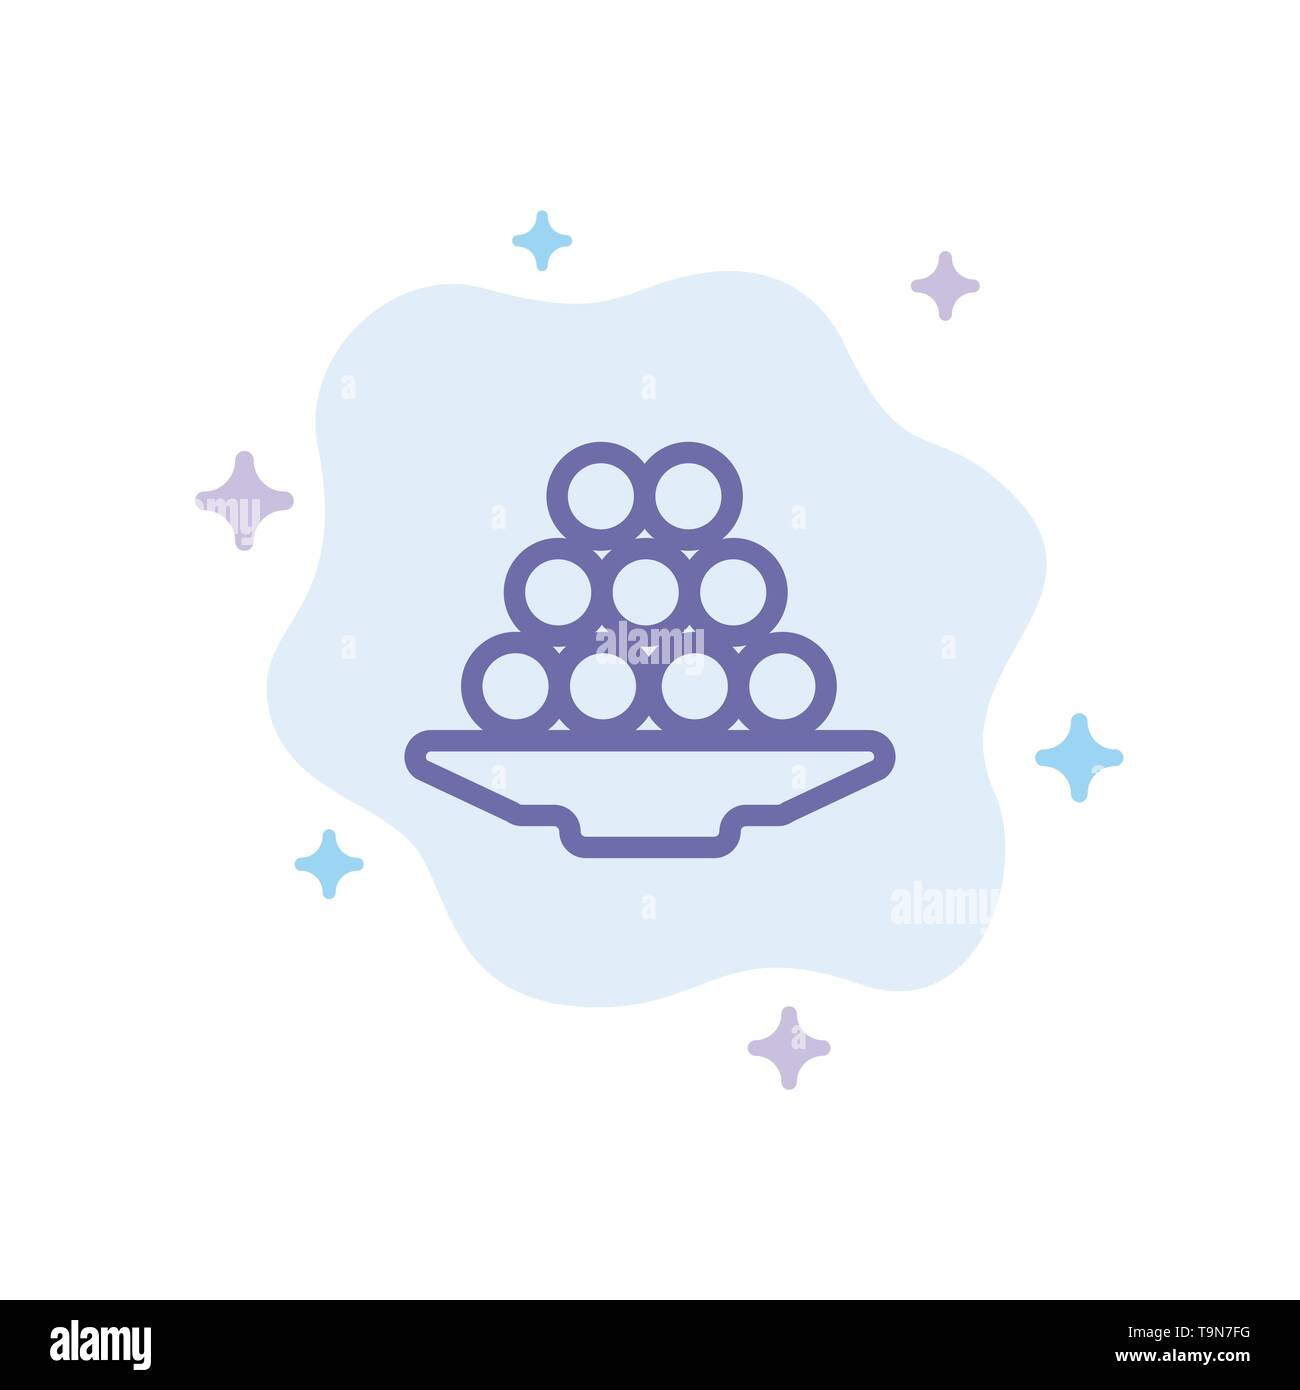 Bowl, Delicacy, Dessert, Indian, Laddu, Sweet, Treat Blue Icon on Abstract Cloud Background - Stock Image